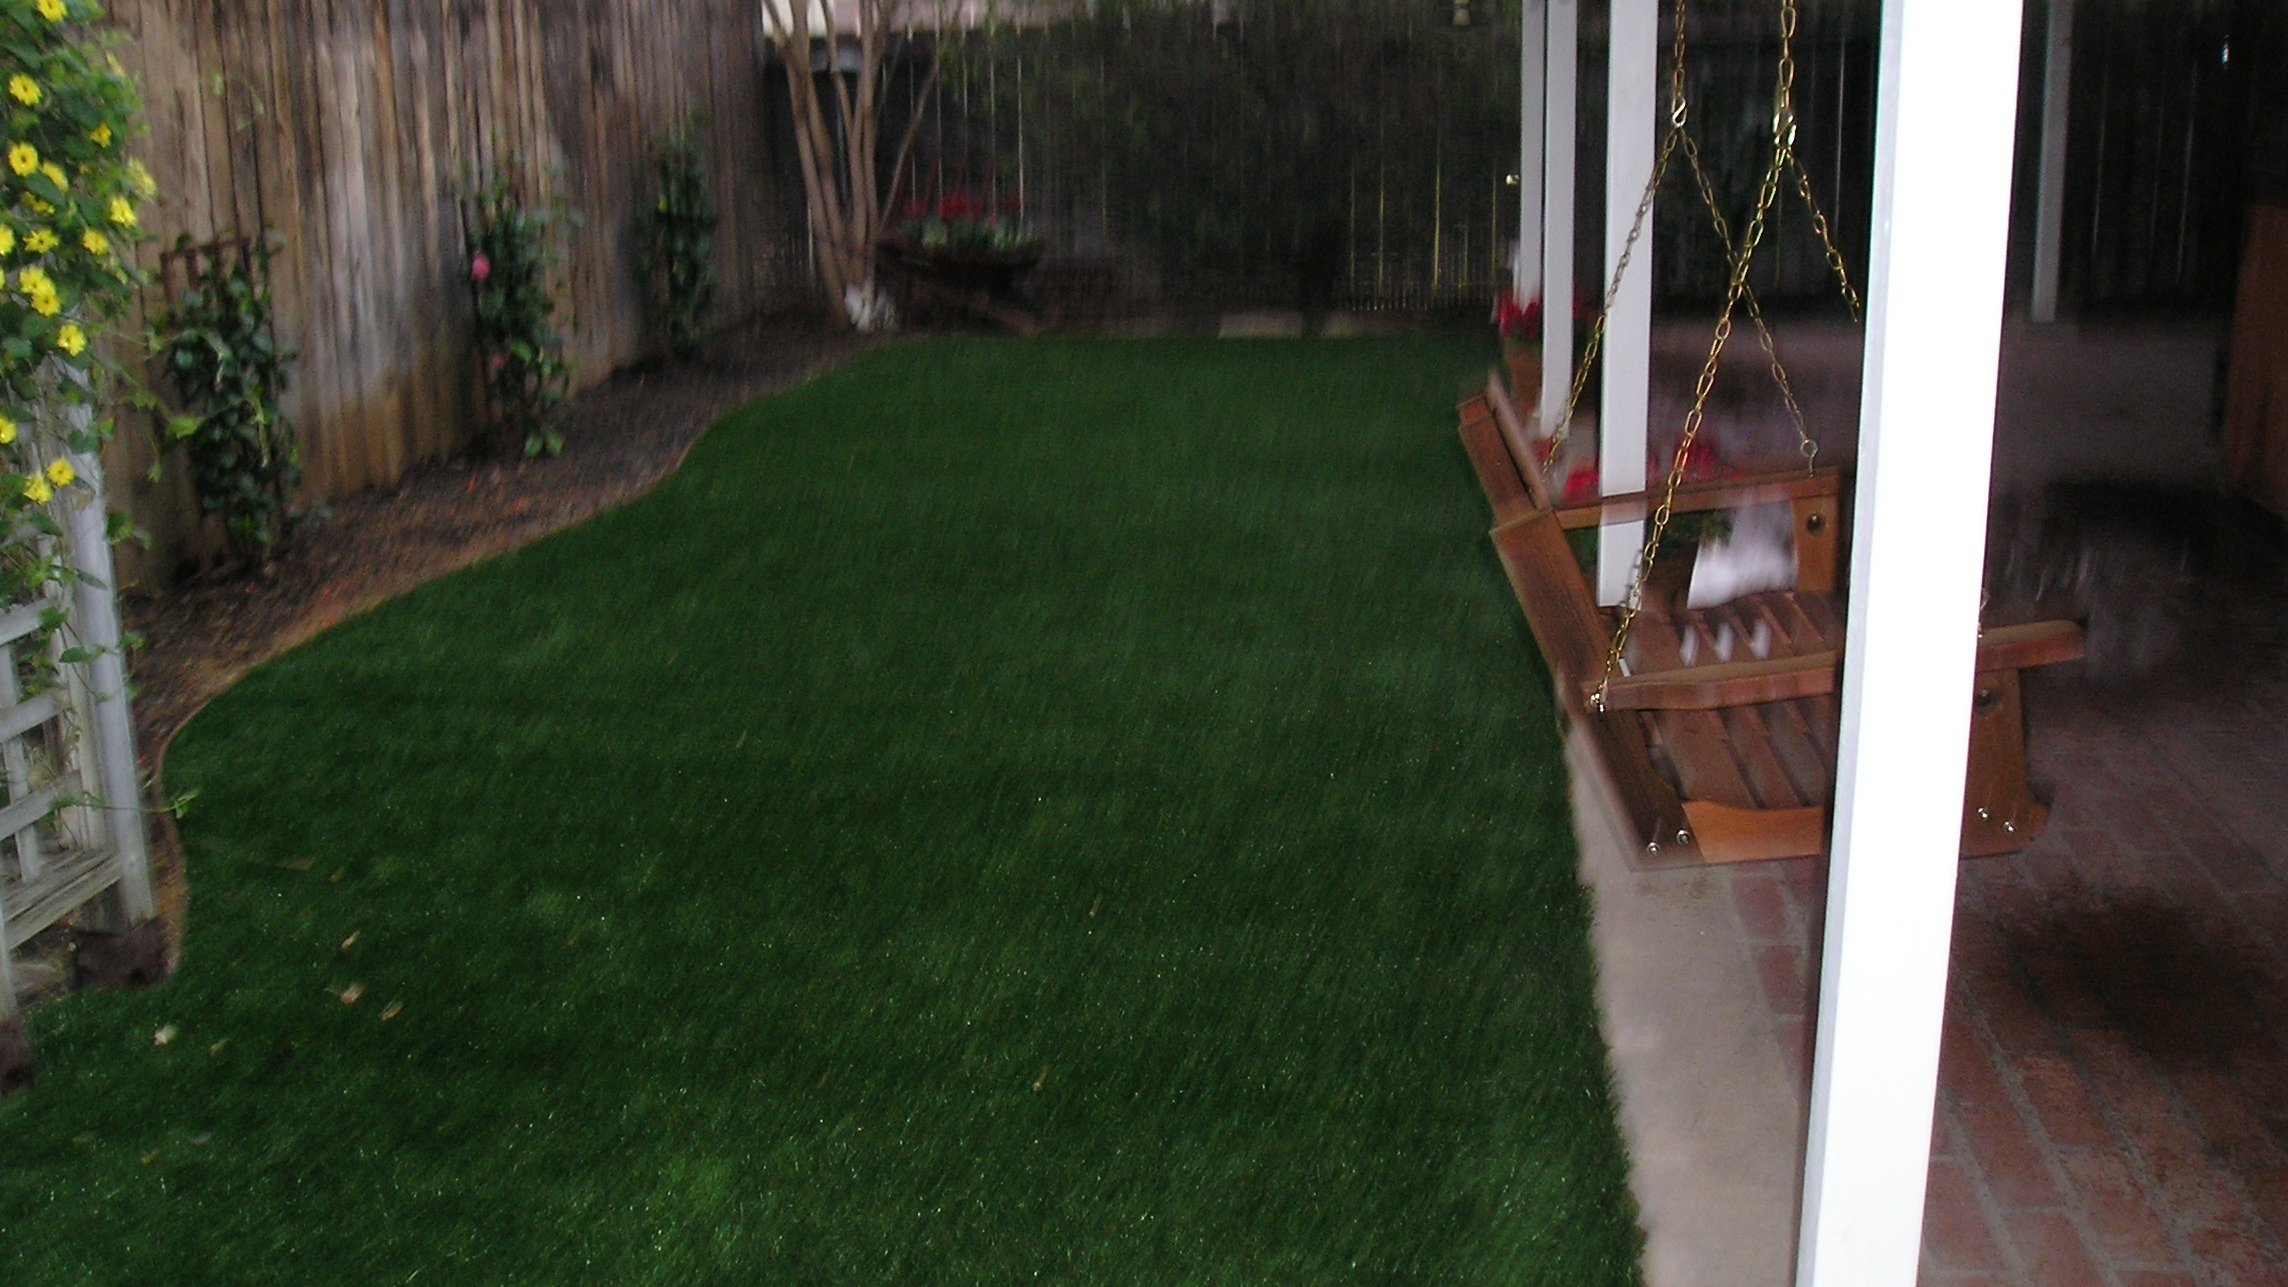 S Blade-90 Green on Green artificial lawns,fake lawns,artificial grass for lawns,artificial turf for lawns,fake grass for lawns,artificial lawn,synthetic lawn,fake lawn,turf lawn,fake grass lawn